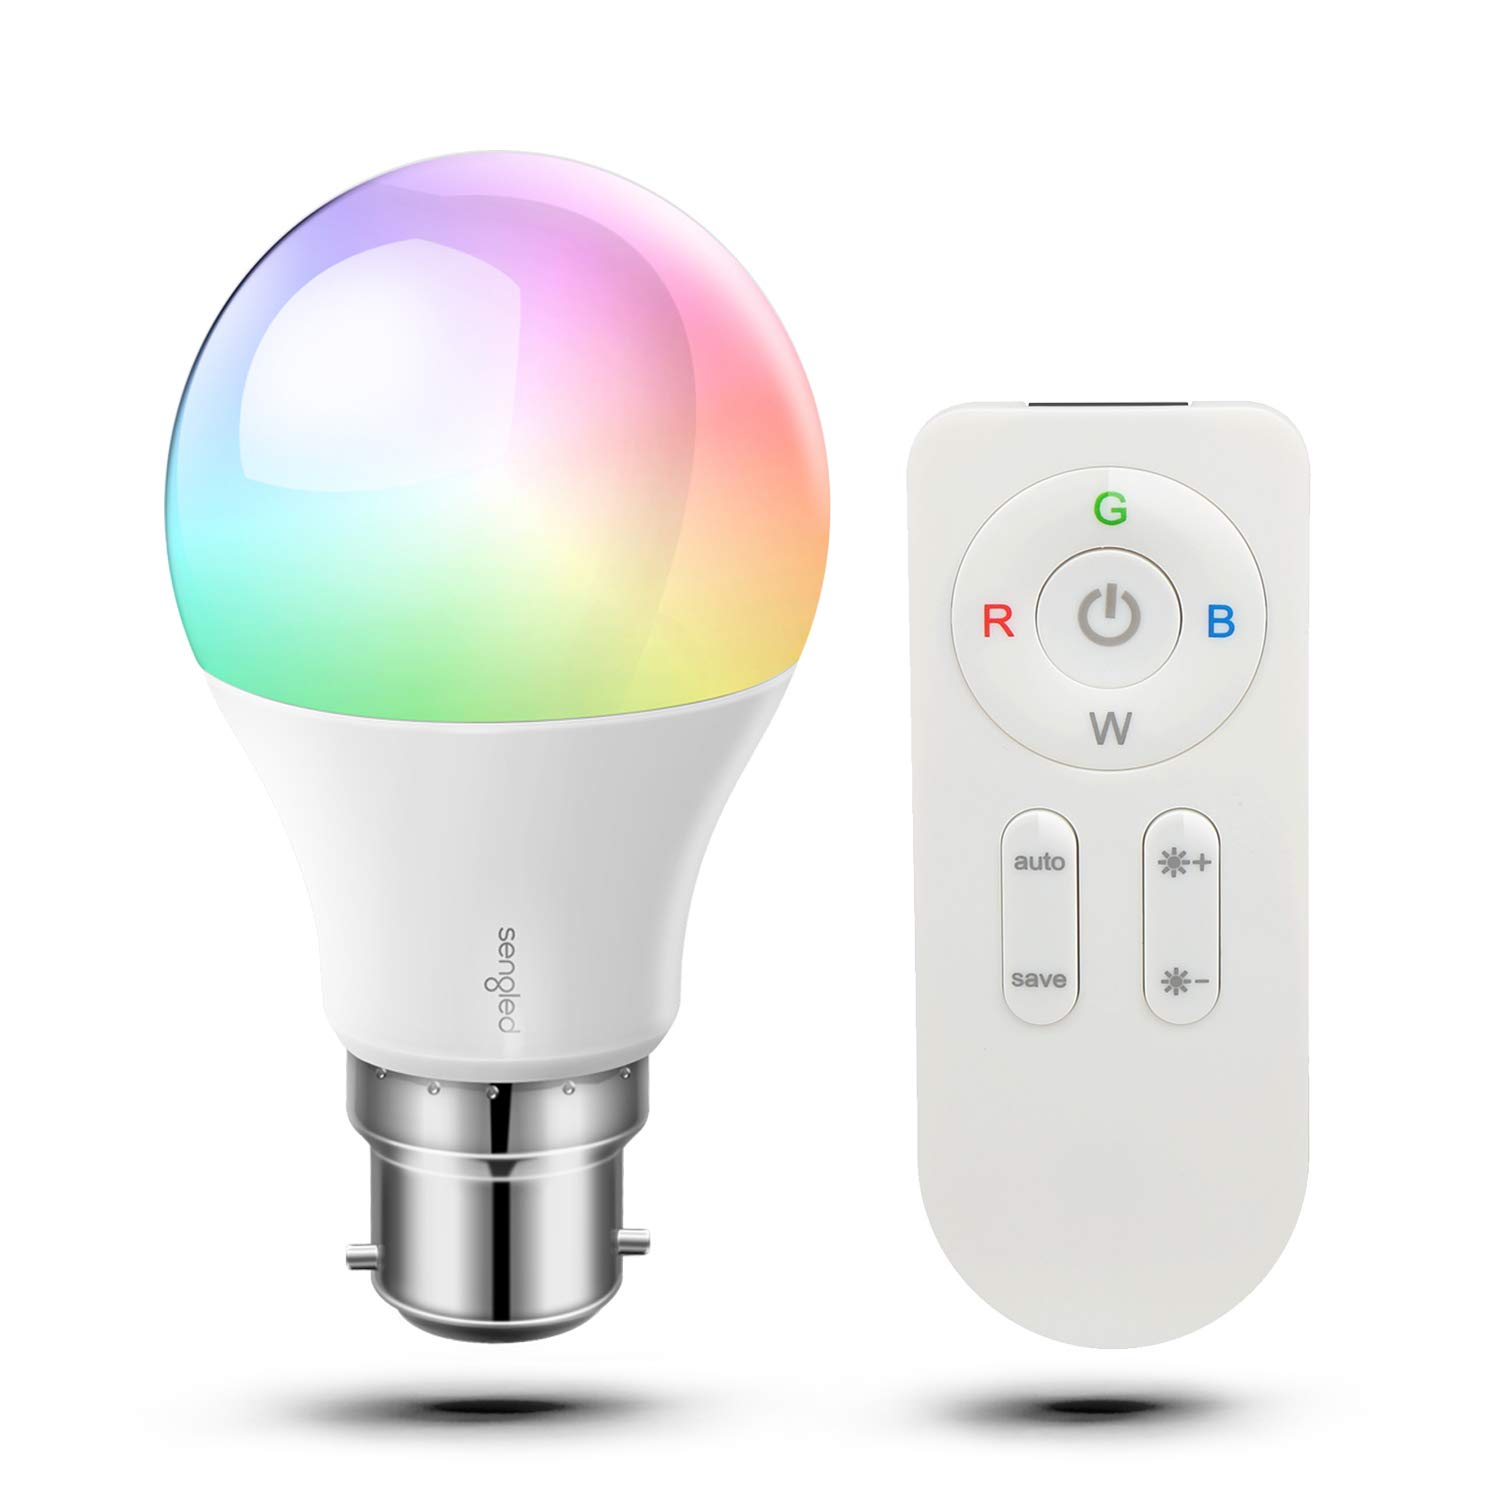 Sengled Paint Colour Changing, Dimmable LED Light Bulb Through Remote Control with E27 Edison Base,16 Mio.Colours for Christmas Party Games,2 Pack [Energy Class A +] PTA60ND8A_2P